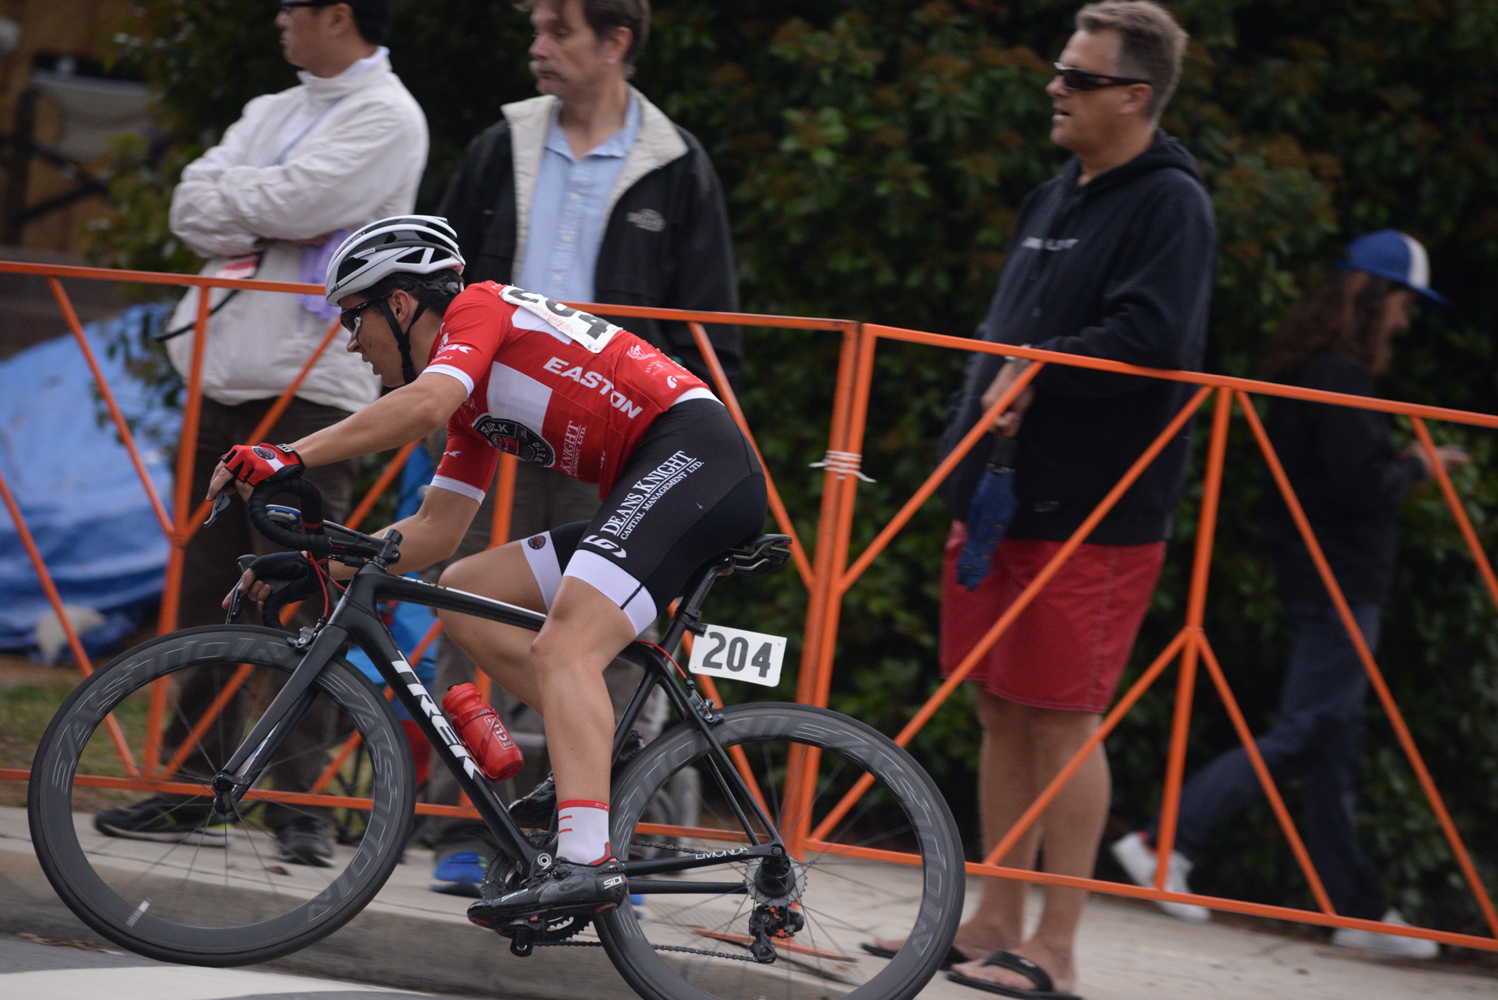 Kyle in the crit, leaning the corner.